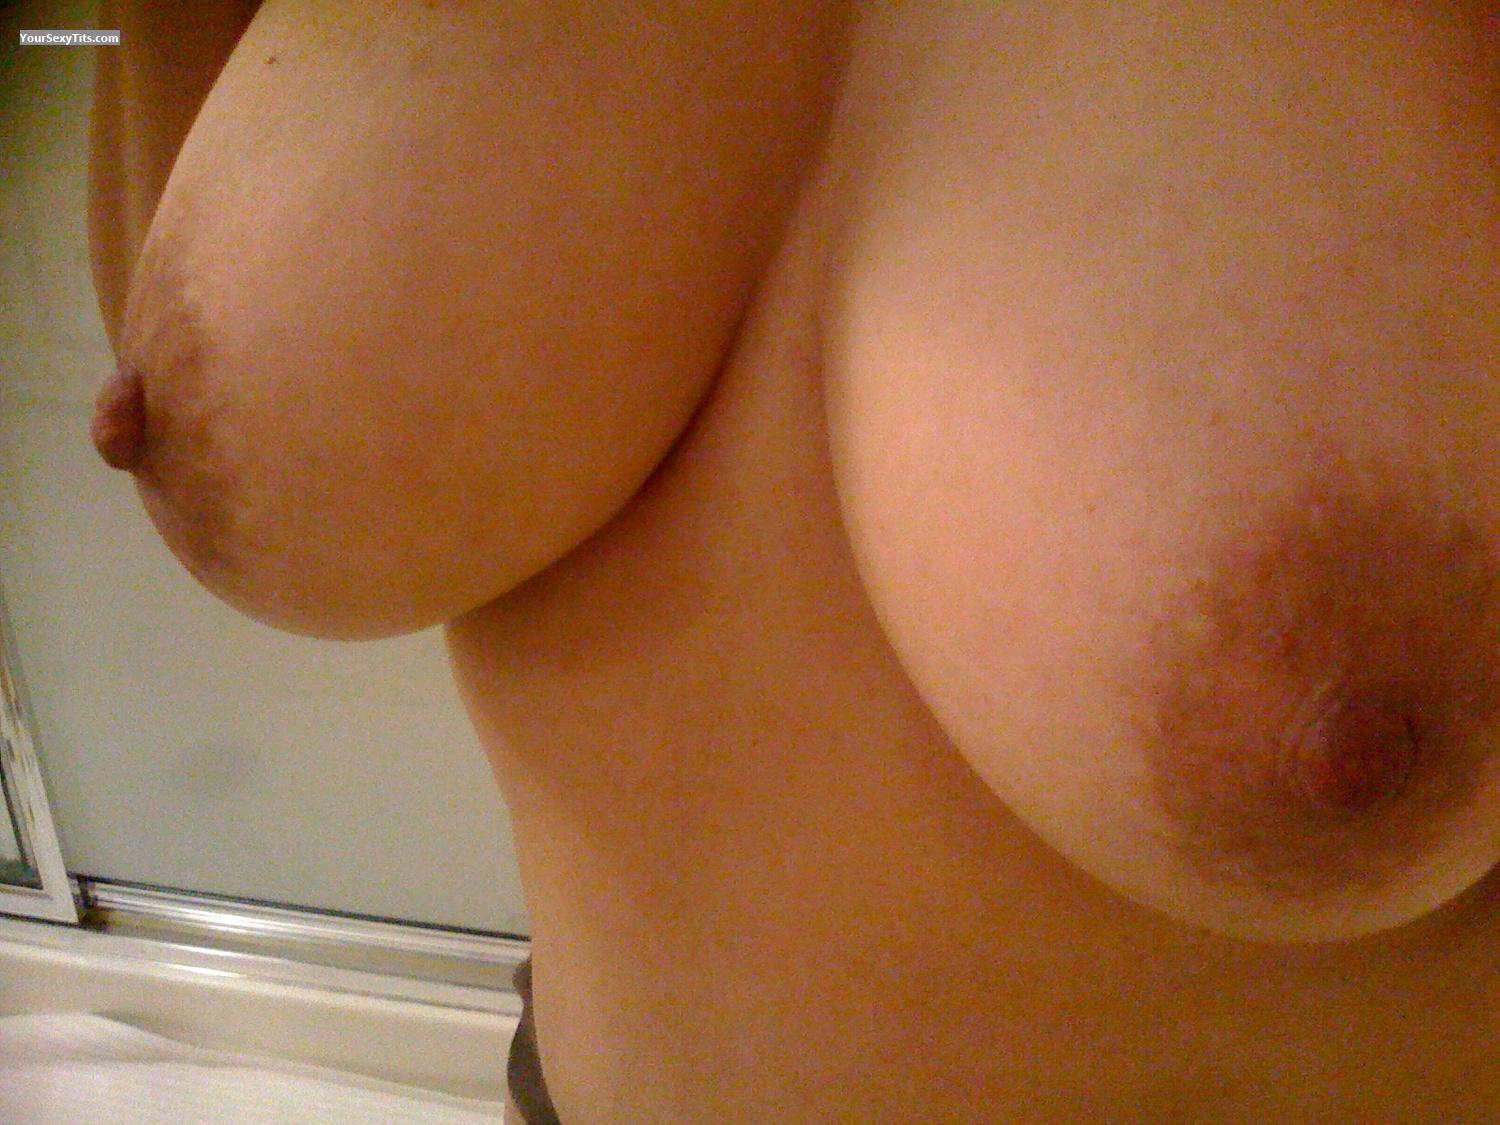 Tit Flash: My Medium Tits By IPhone (Selfie) - Nipsy R from United States